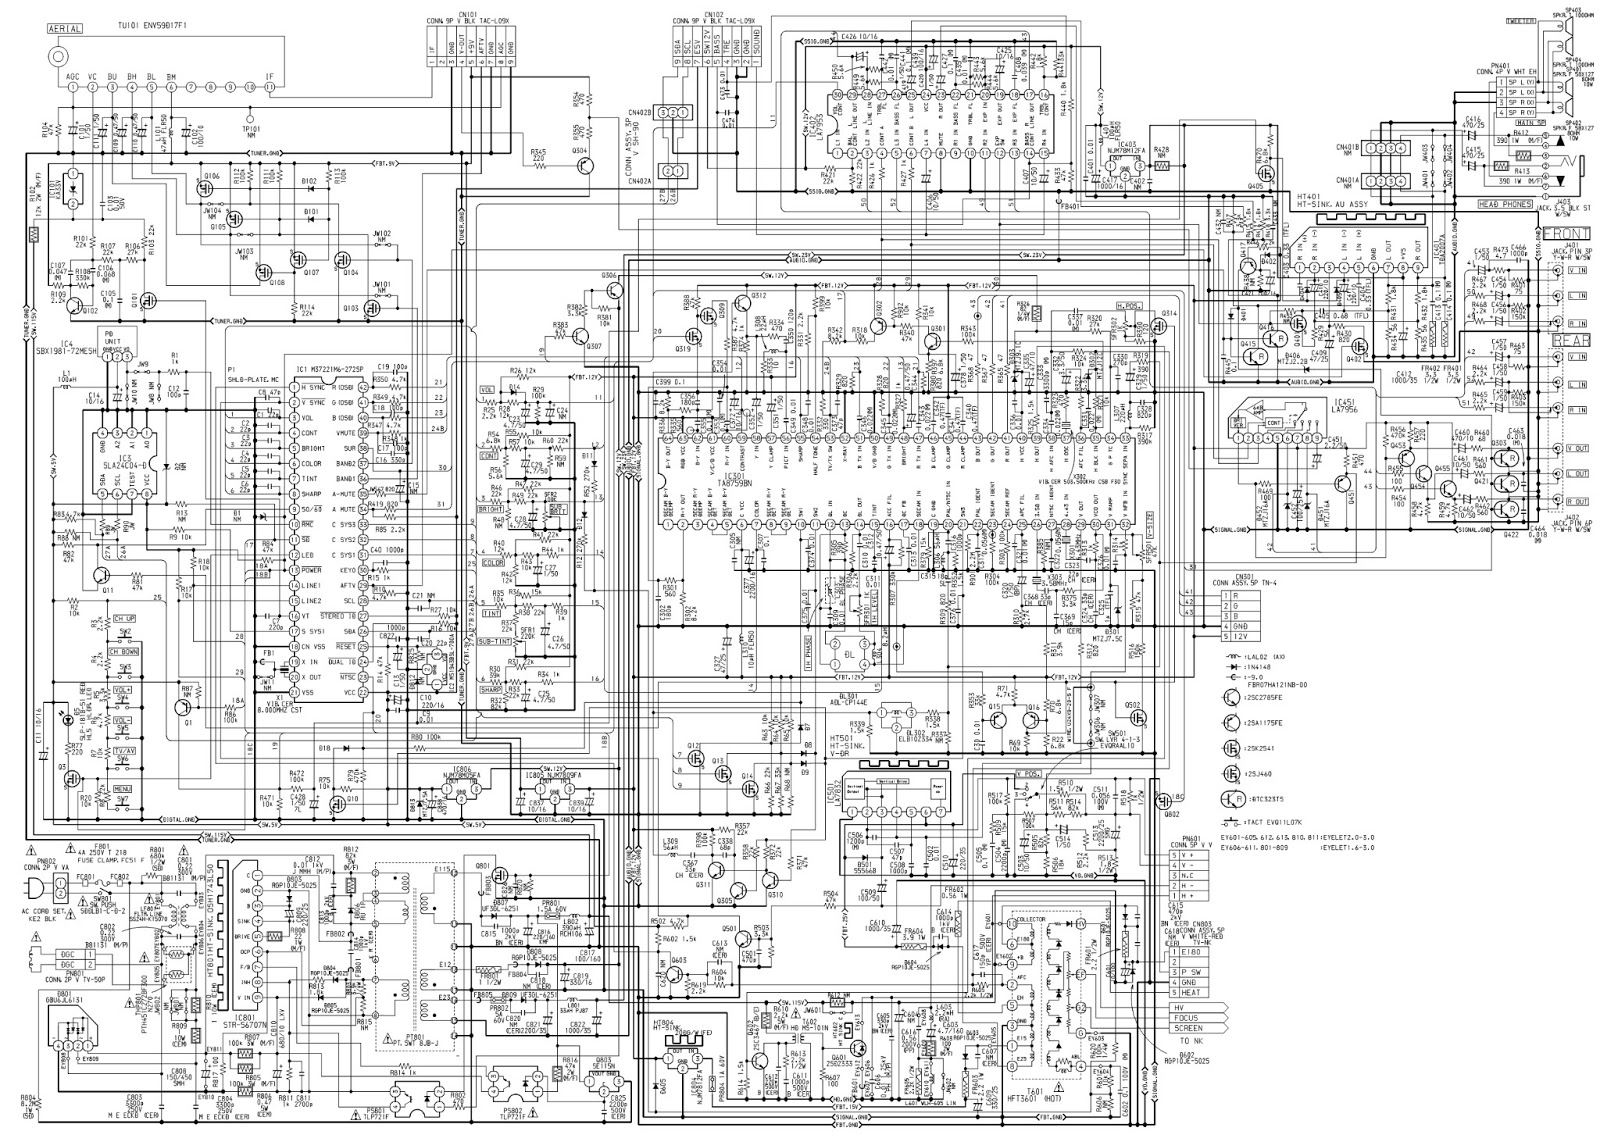 Aiwa Tv Circuit Diagram Introduction To Electrical Wiring Diagrams Color Television Se141 Type K And Eg Schematic A 219 Using Ics Str S6707 Rh Electronicshelponline Blogspot Com